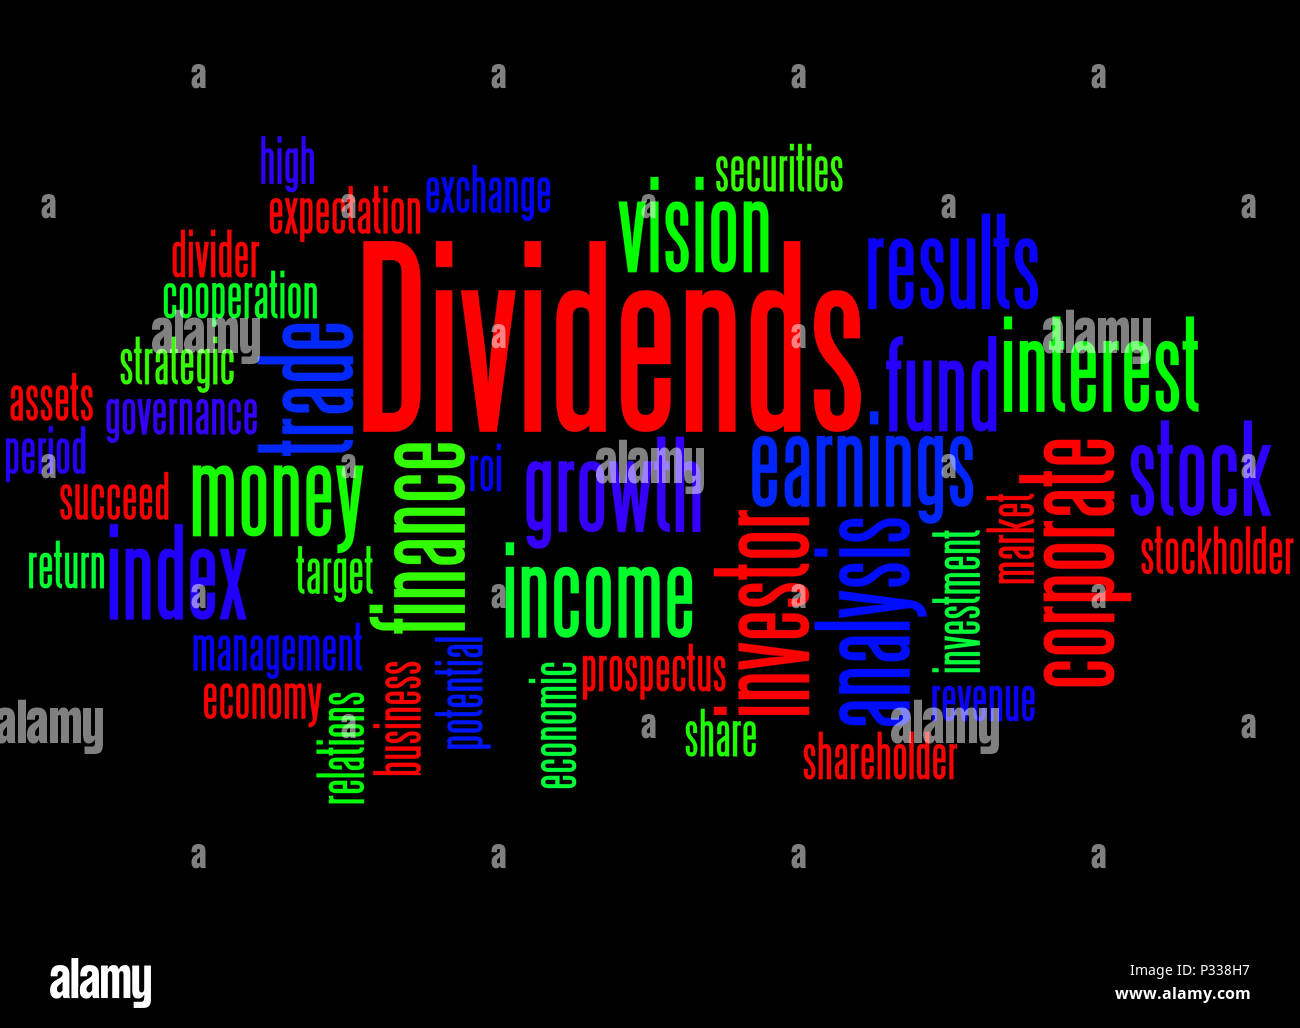 Potential Divider Stock Photos Images Alamy Circuit Of A Voltage Also Called Is Dividends Word Cloud Concept On Black Background Image